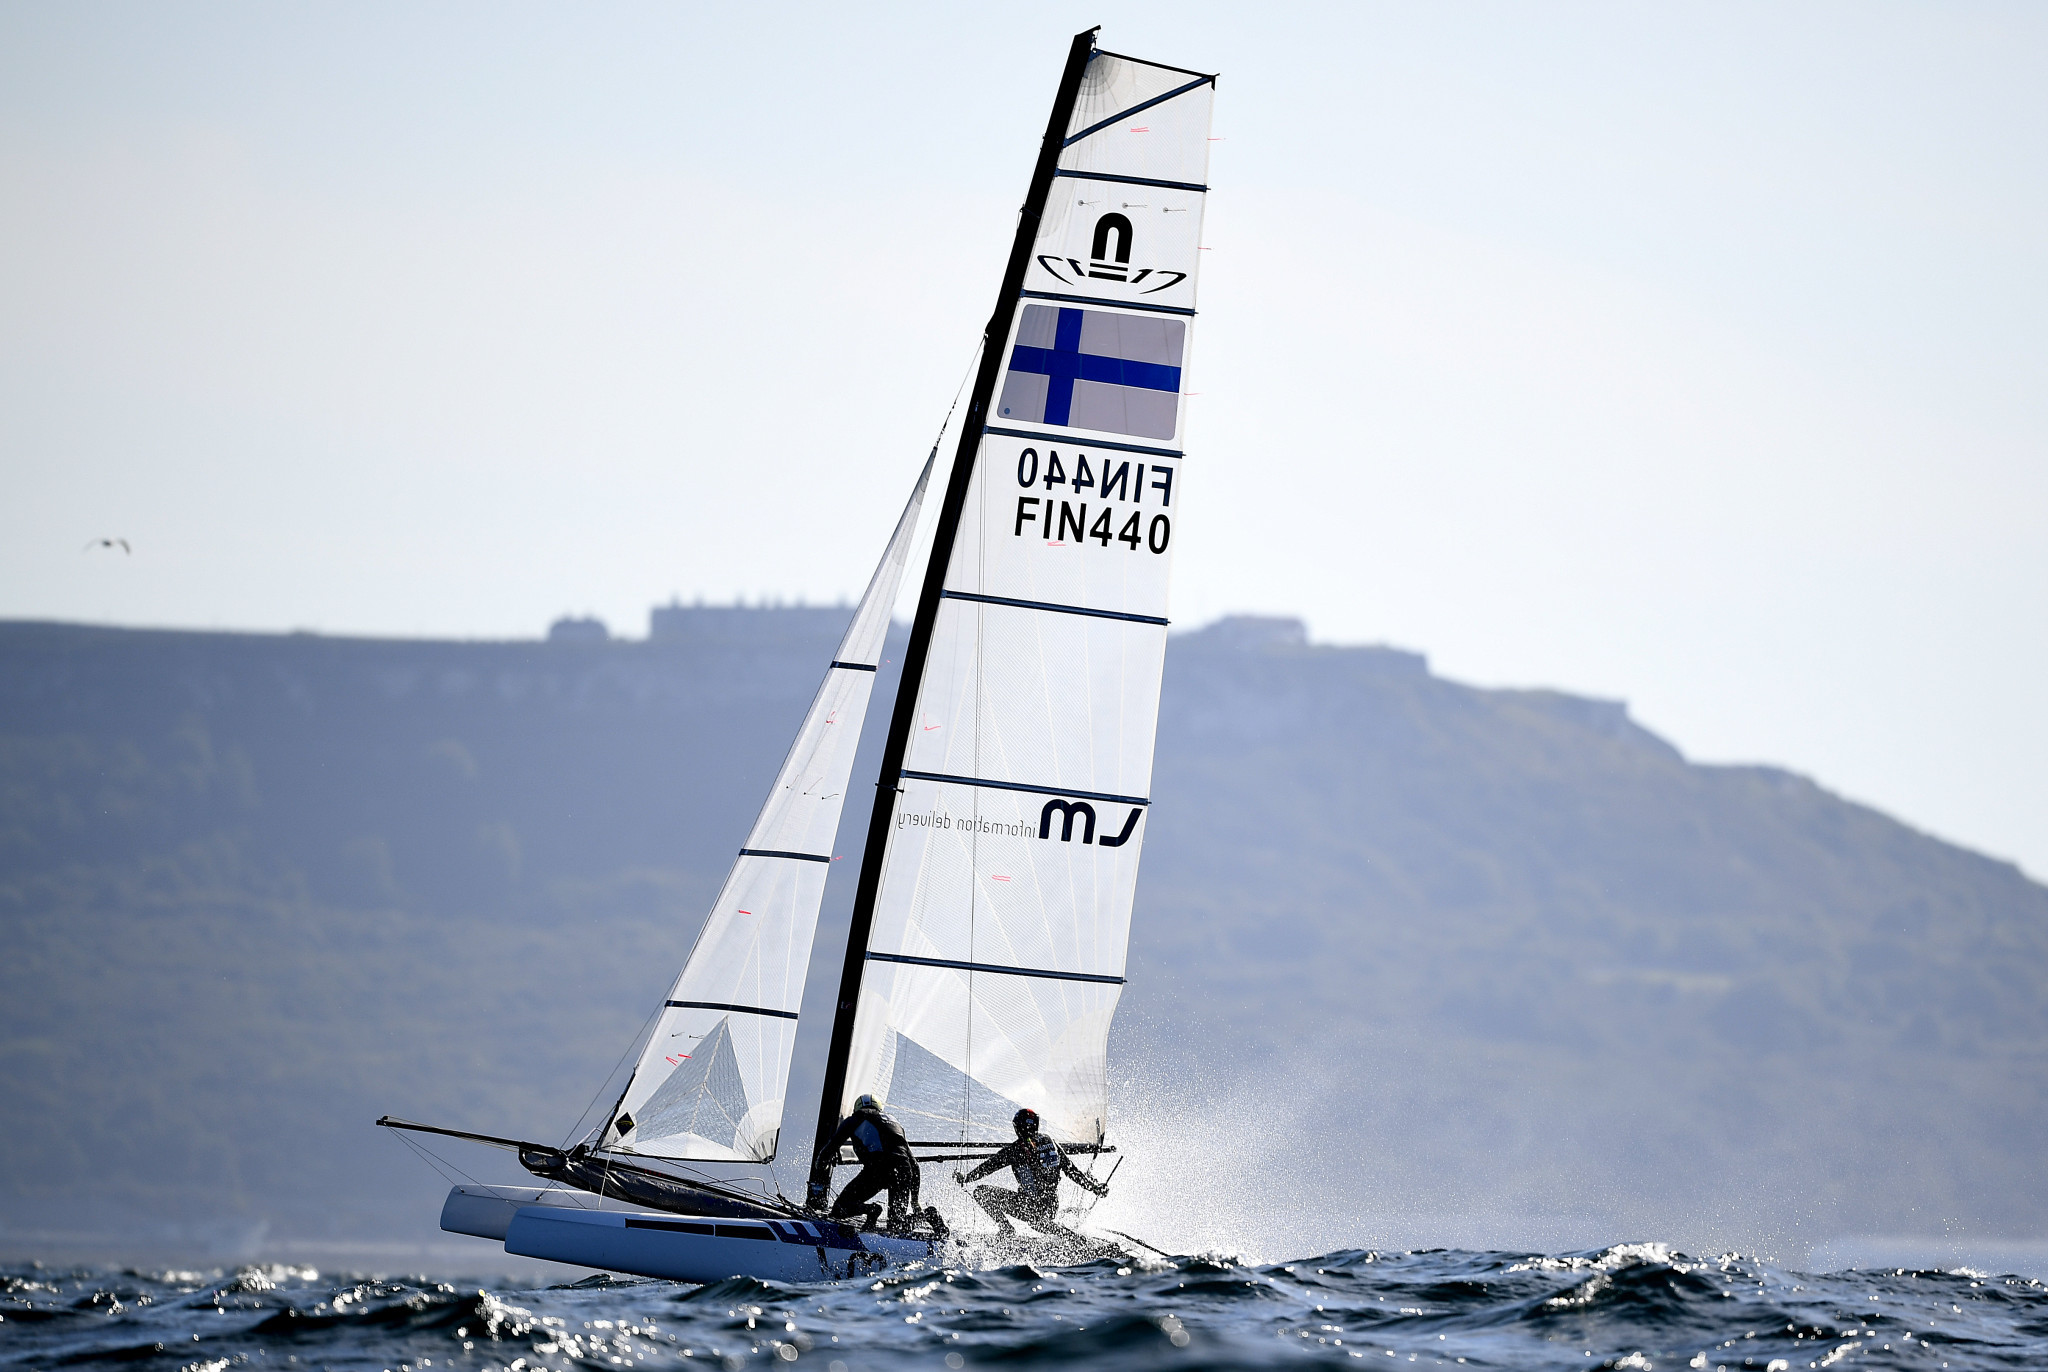 Sinem Kurtbay and Akseli Keskinen will represent Finland in the Nacra 17 event at the Games ©Getty Images